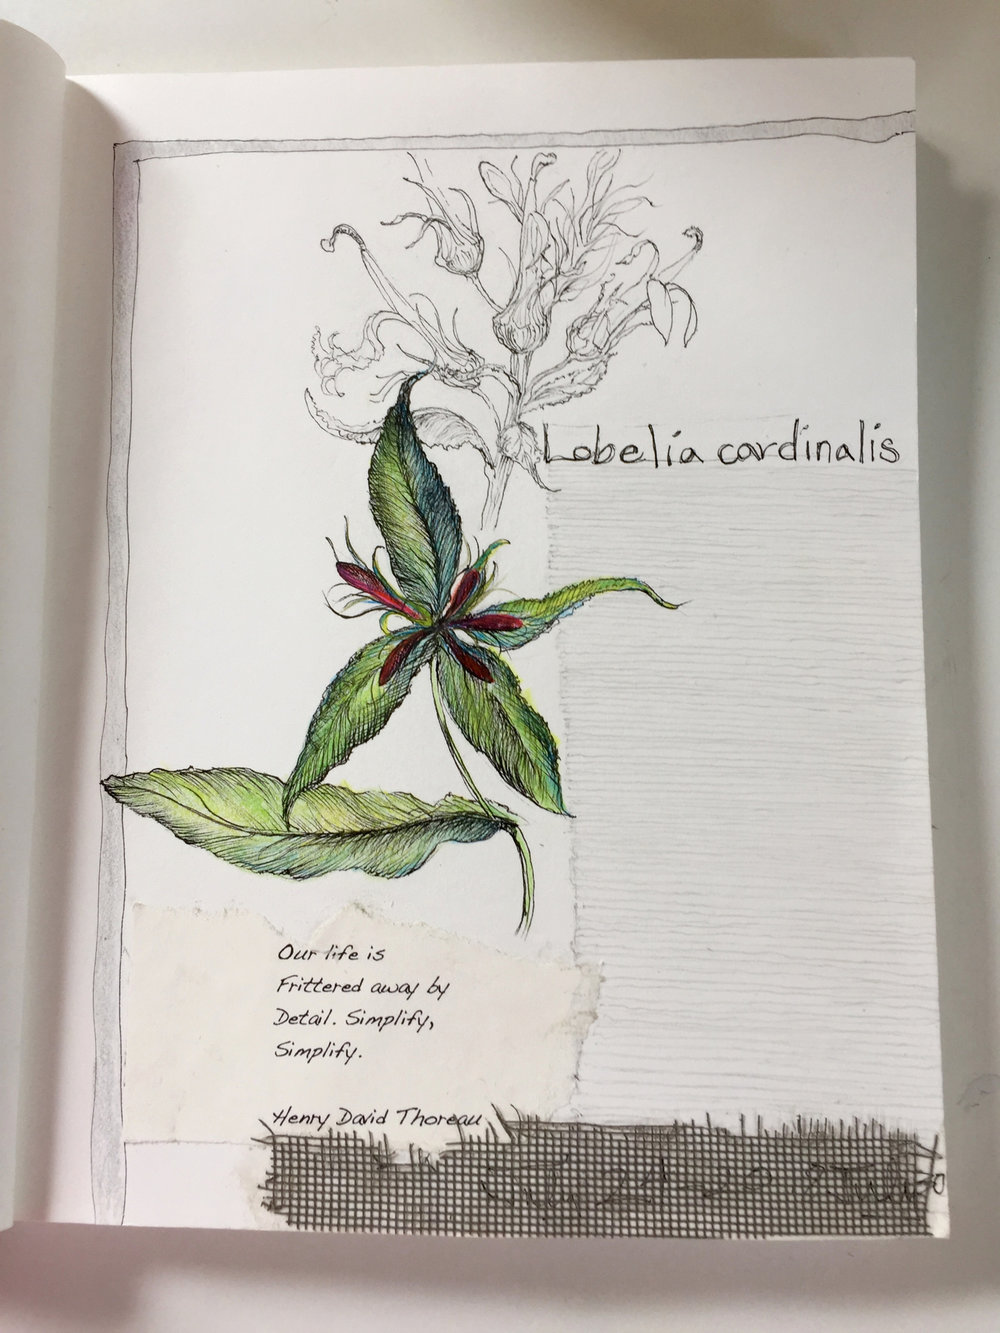 Sitting with Lobelia cardinalis & sketching